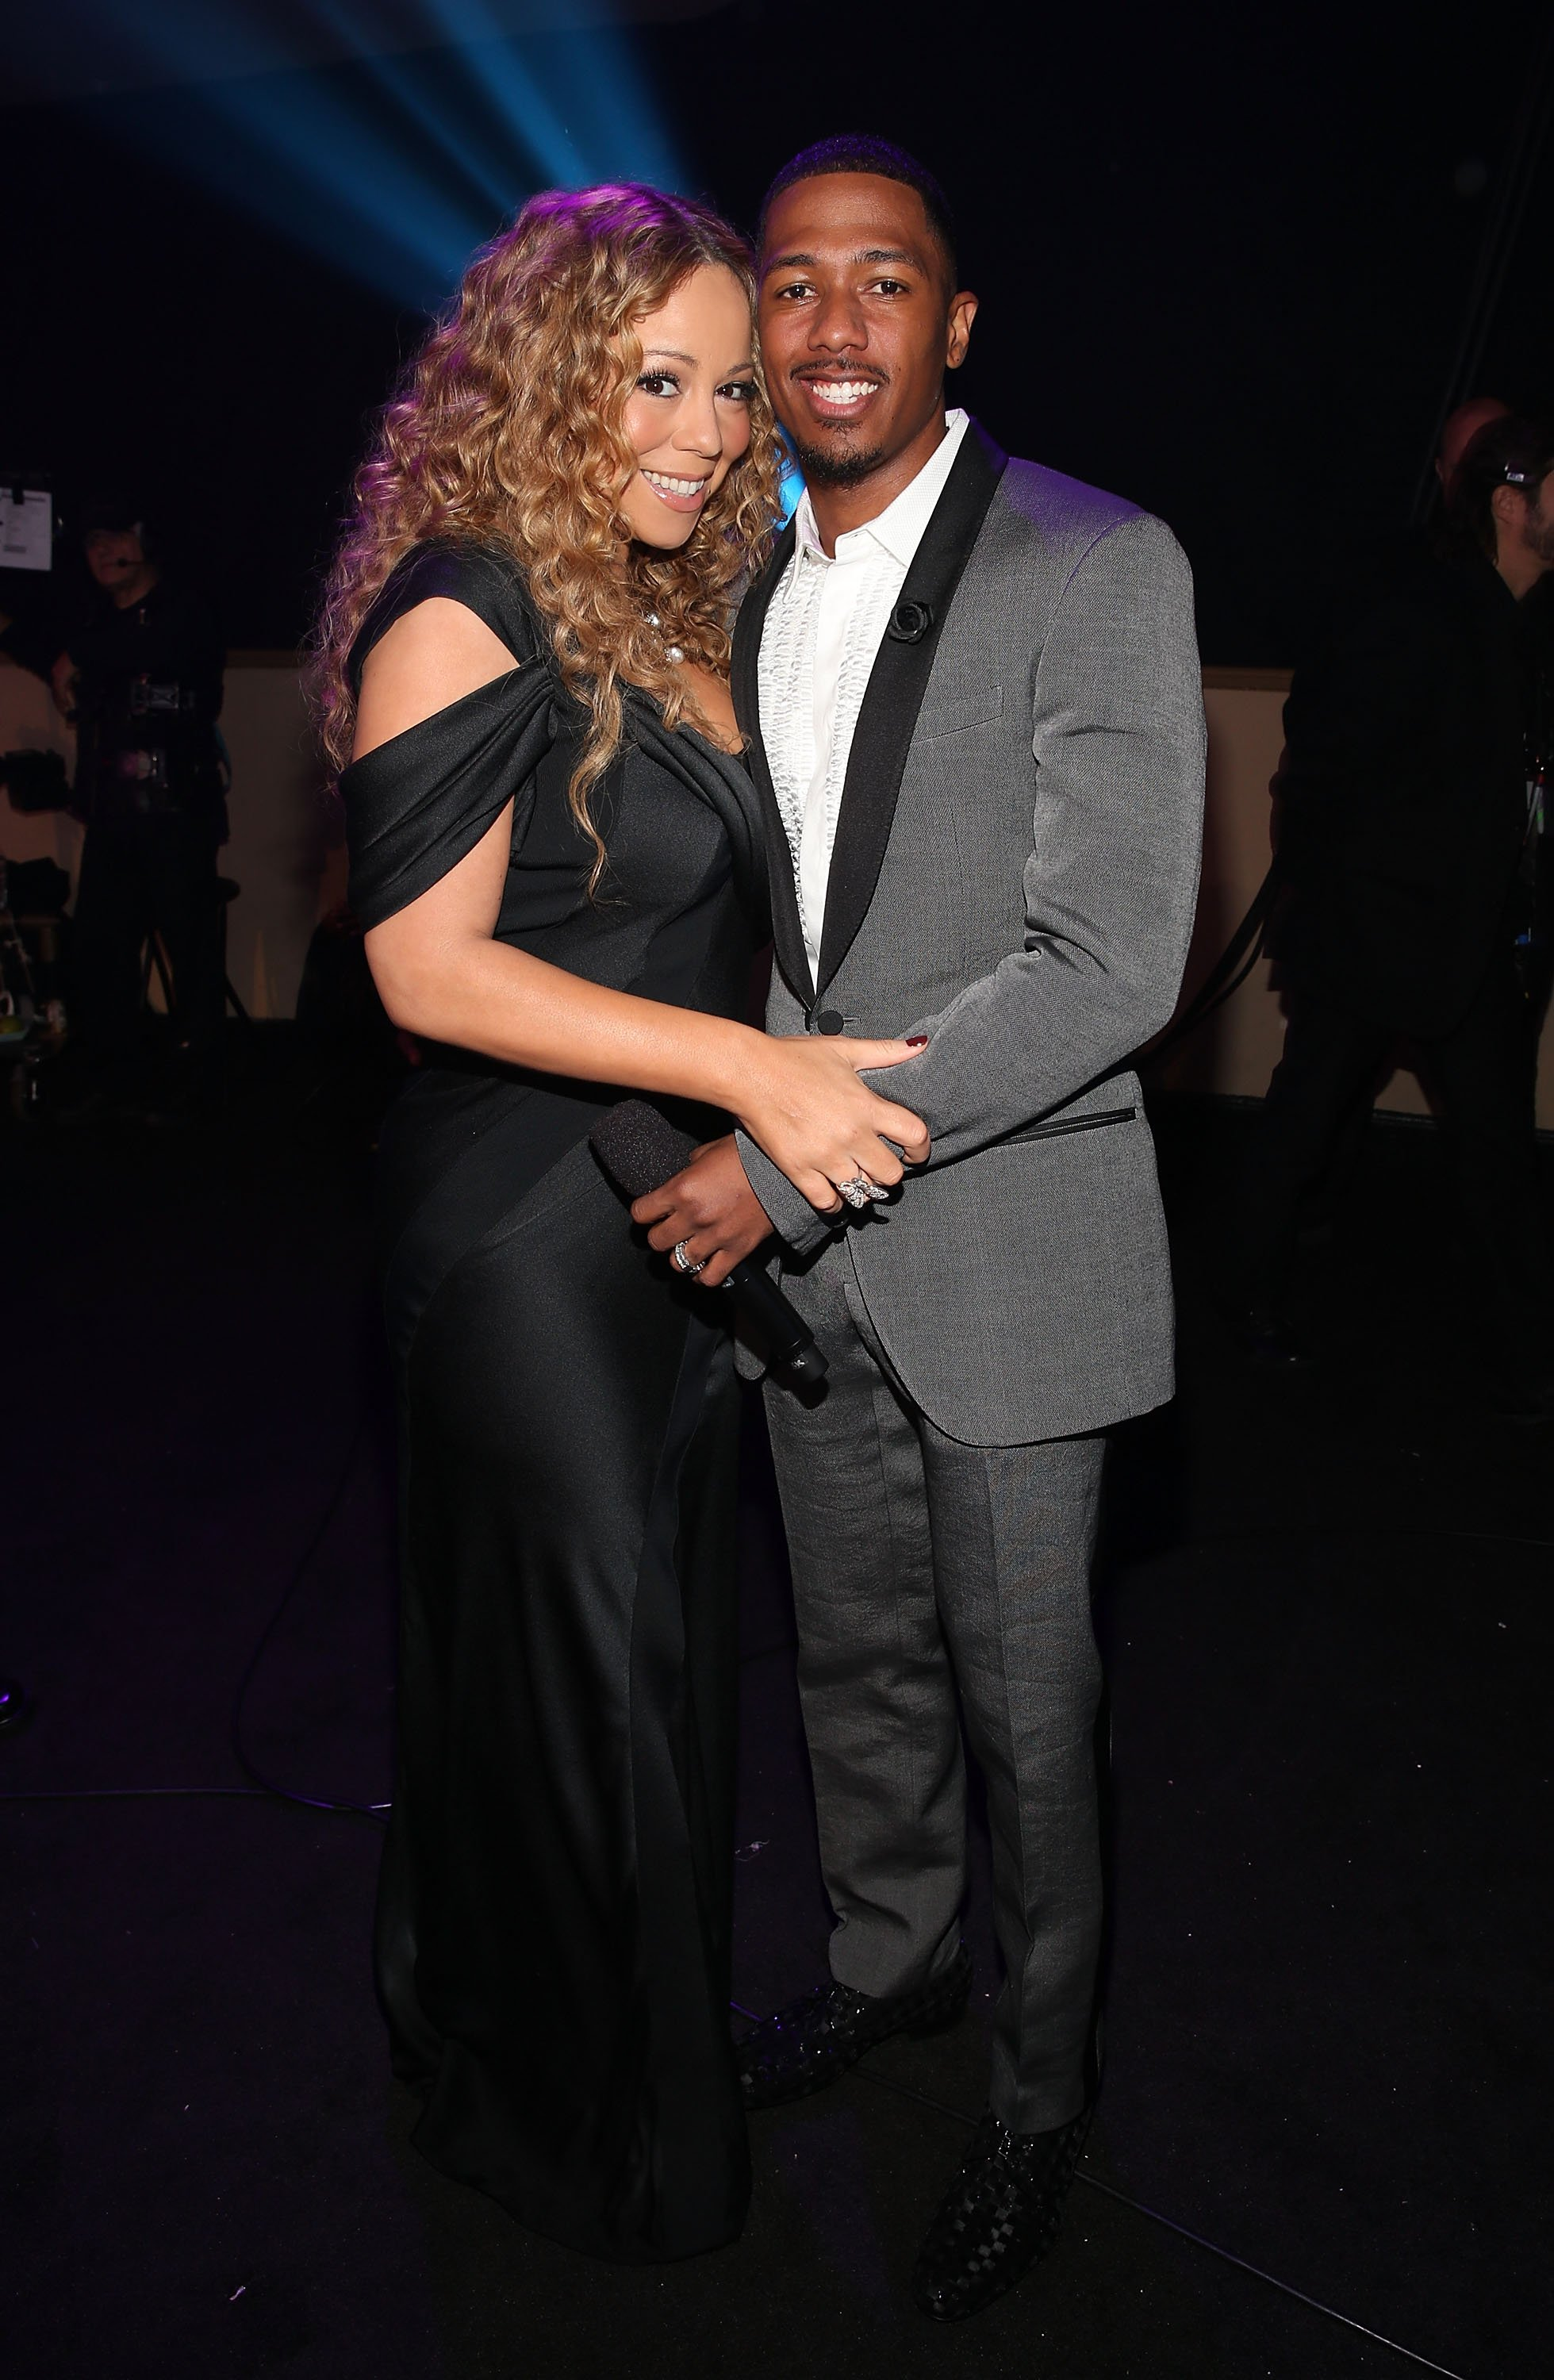 Former spouses Nick Cannon and Mariah Carey at Nickelodeon's 2012 TeenNick HALO Awards in Hollywood in November 2012. | Photo: Getty Images